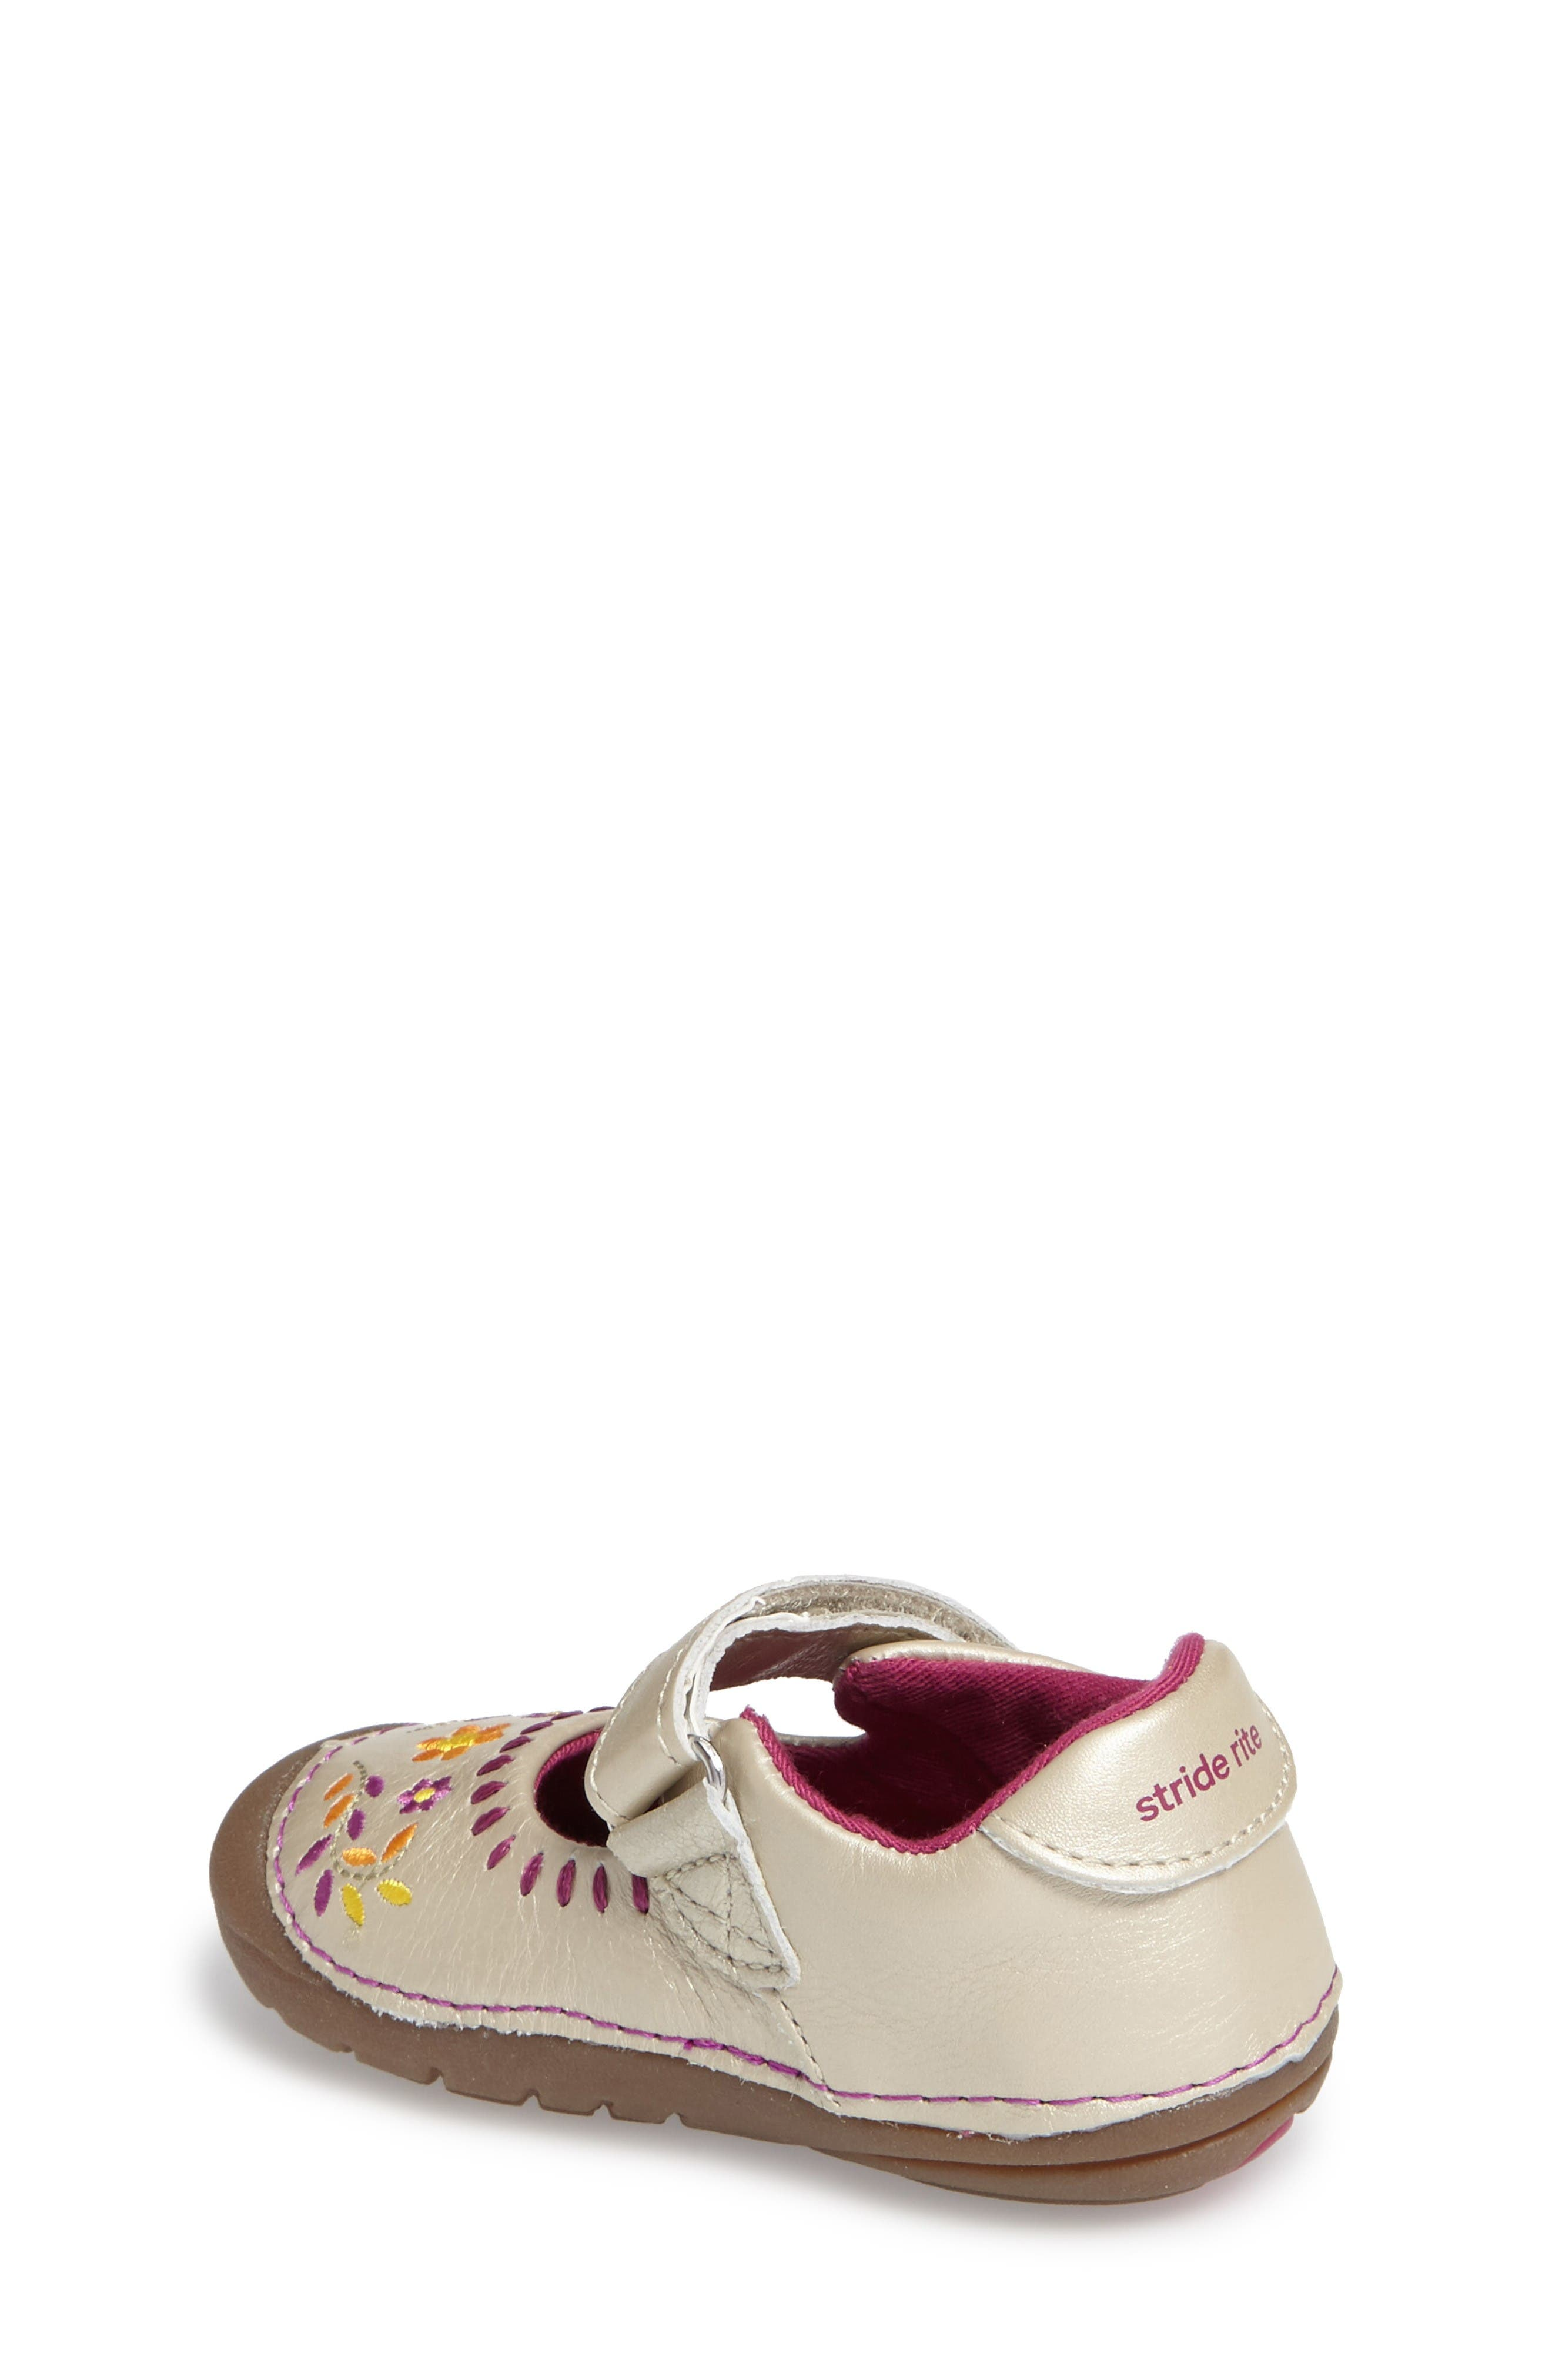 Alternate Image 2  - Stride Rite Atley Flower Embroidered Mary Jane (Baby & Walker)